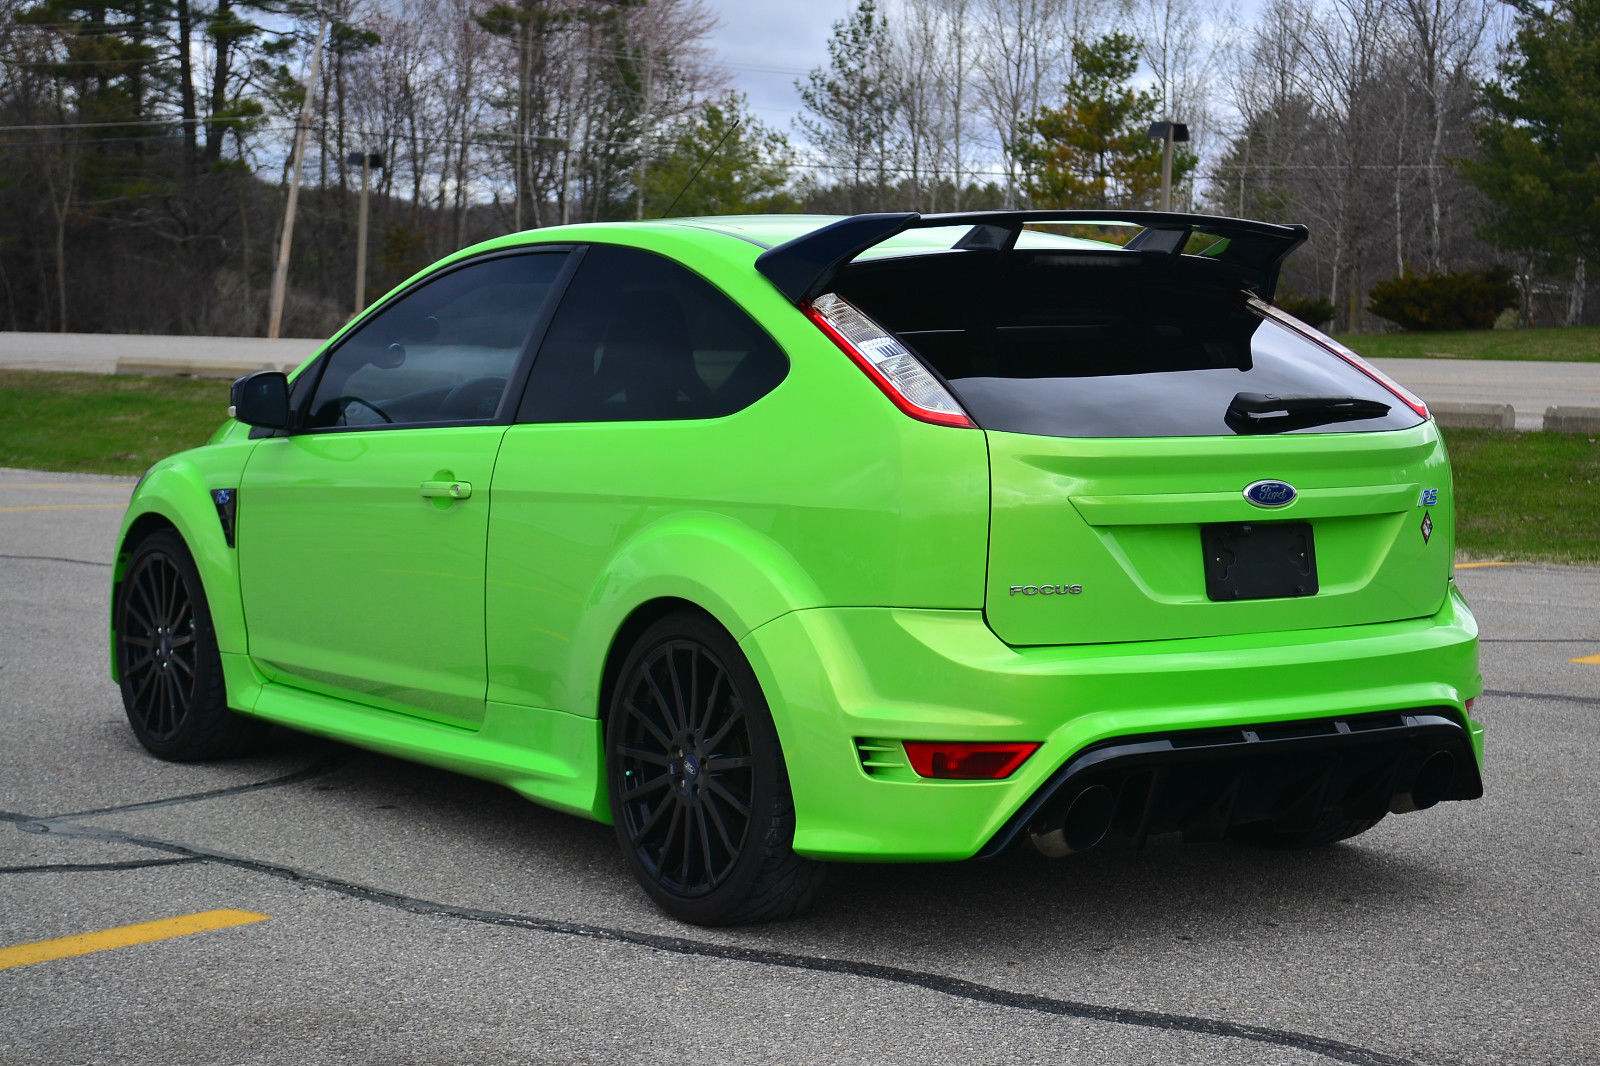 2010 ford focus rs ebay photo 11 the news wheel. Black Bedroom Furniture Sets. Home Design Ideas